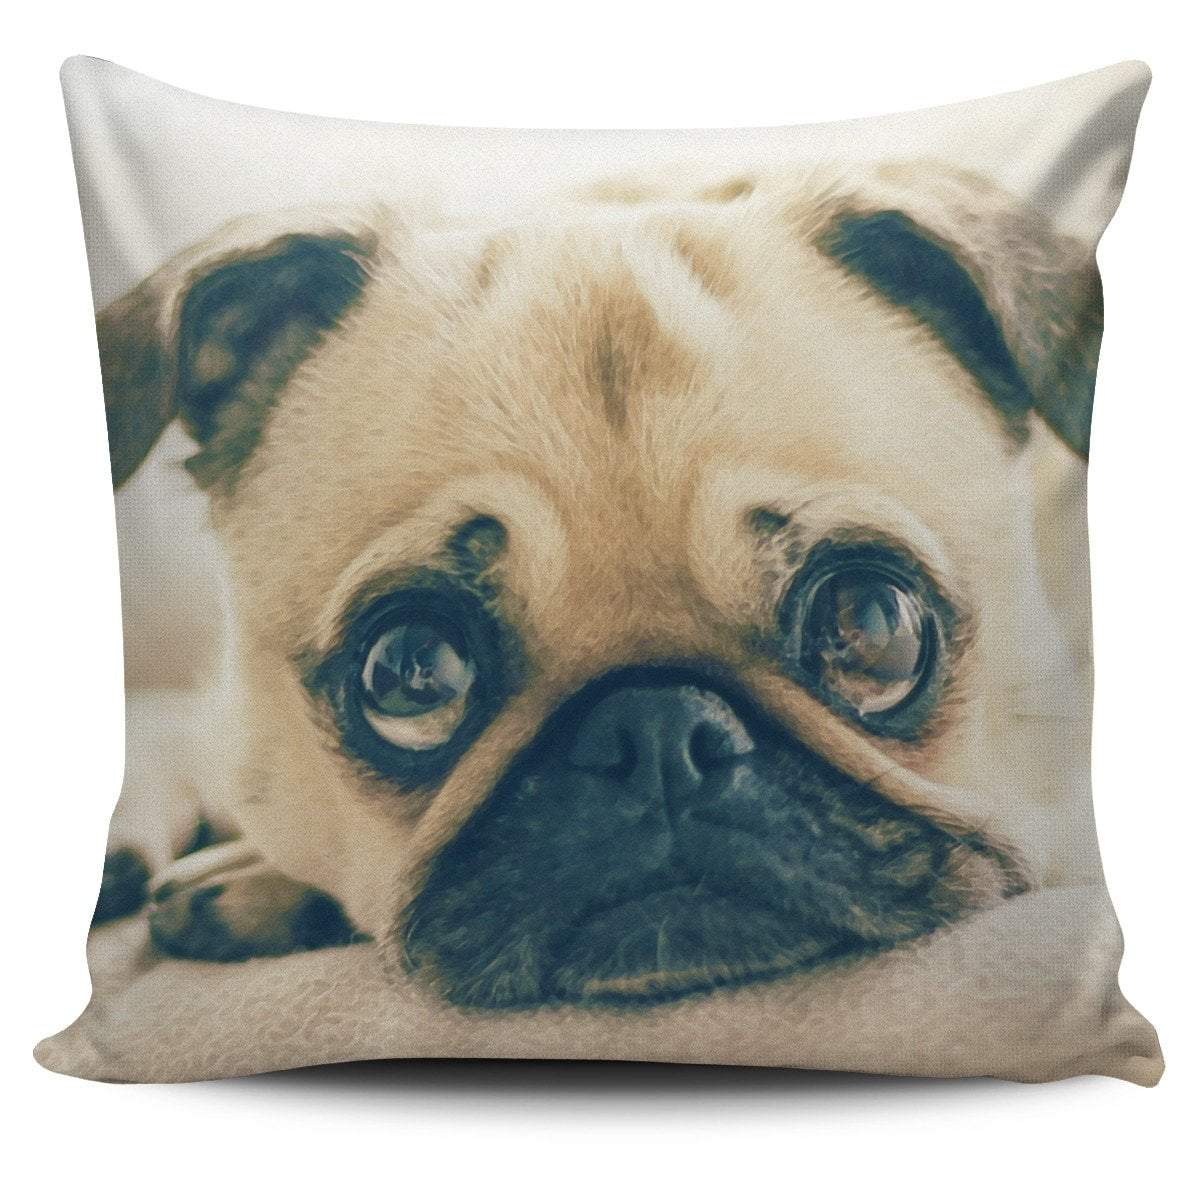 Pacific Pike -  Pillow Cover Pug Puppy Watercolor  -  Pillow Cover Pug Puppy Watercolor  -